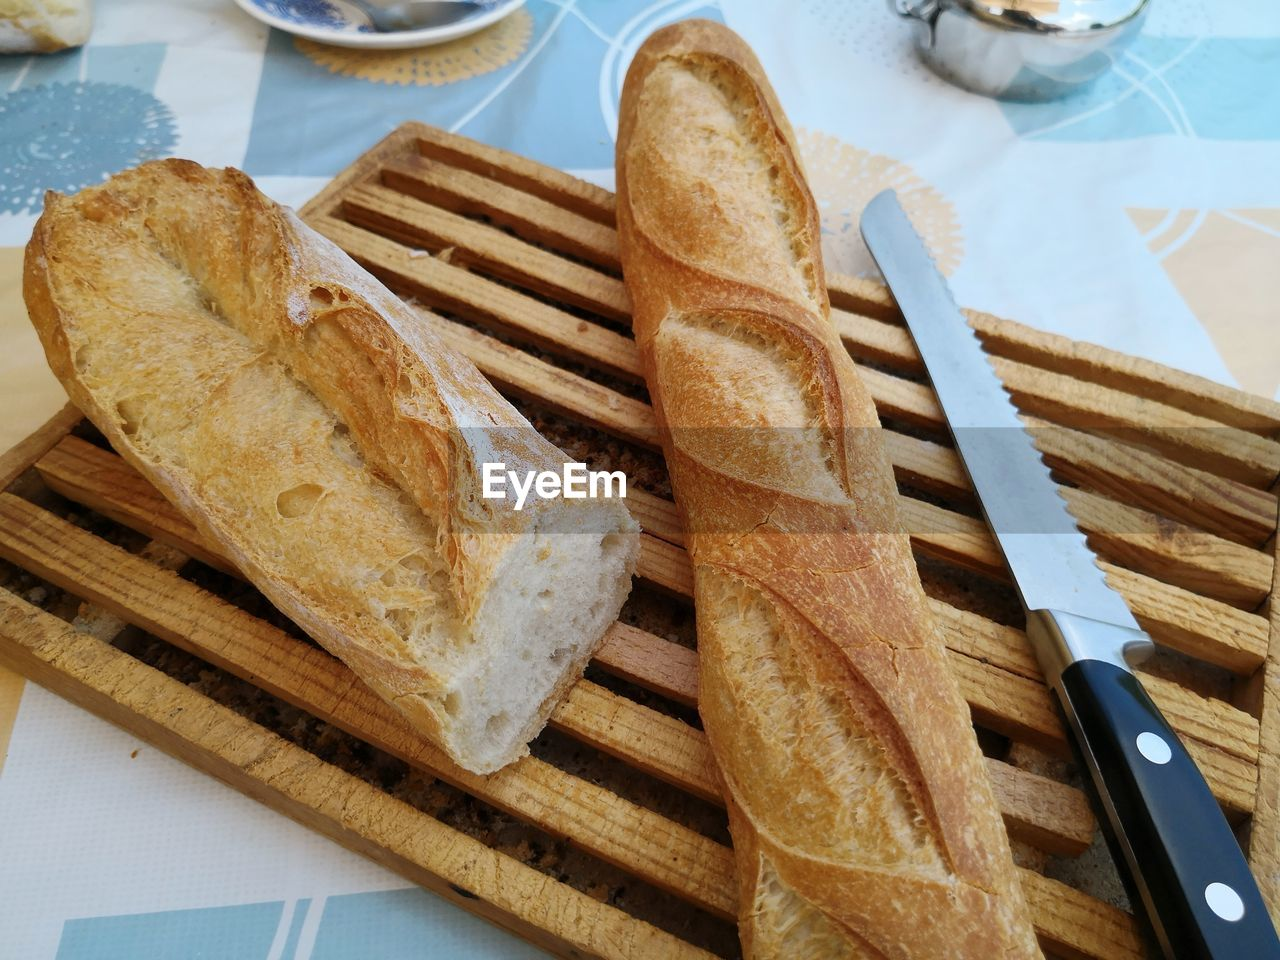 HIGH ANGLE VIEW OF BREAD AND CUTTING BOARD ON TABLE